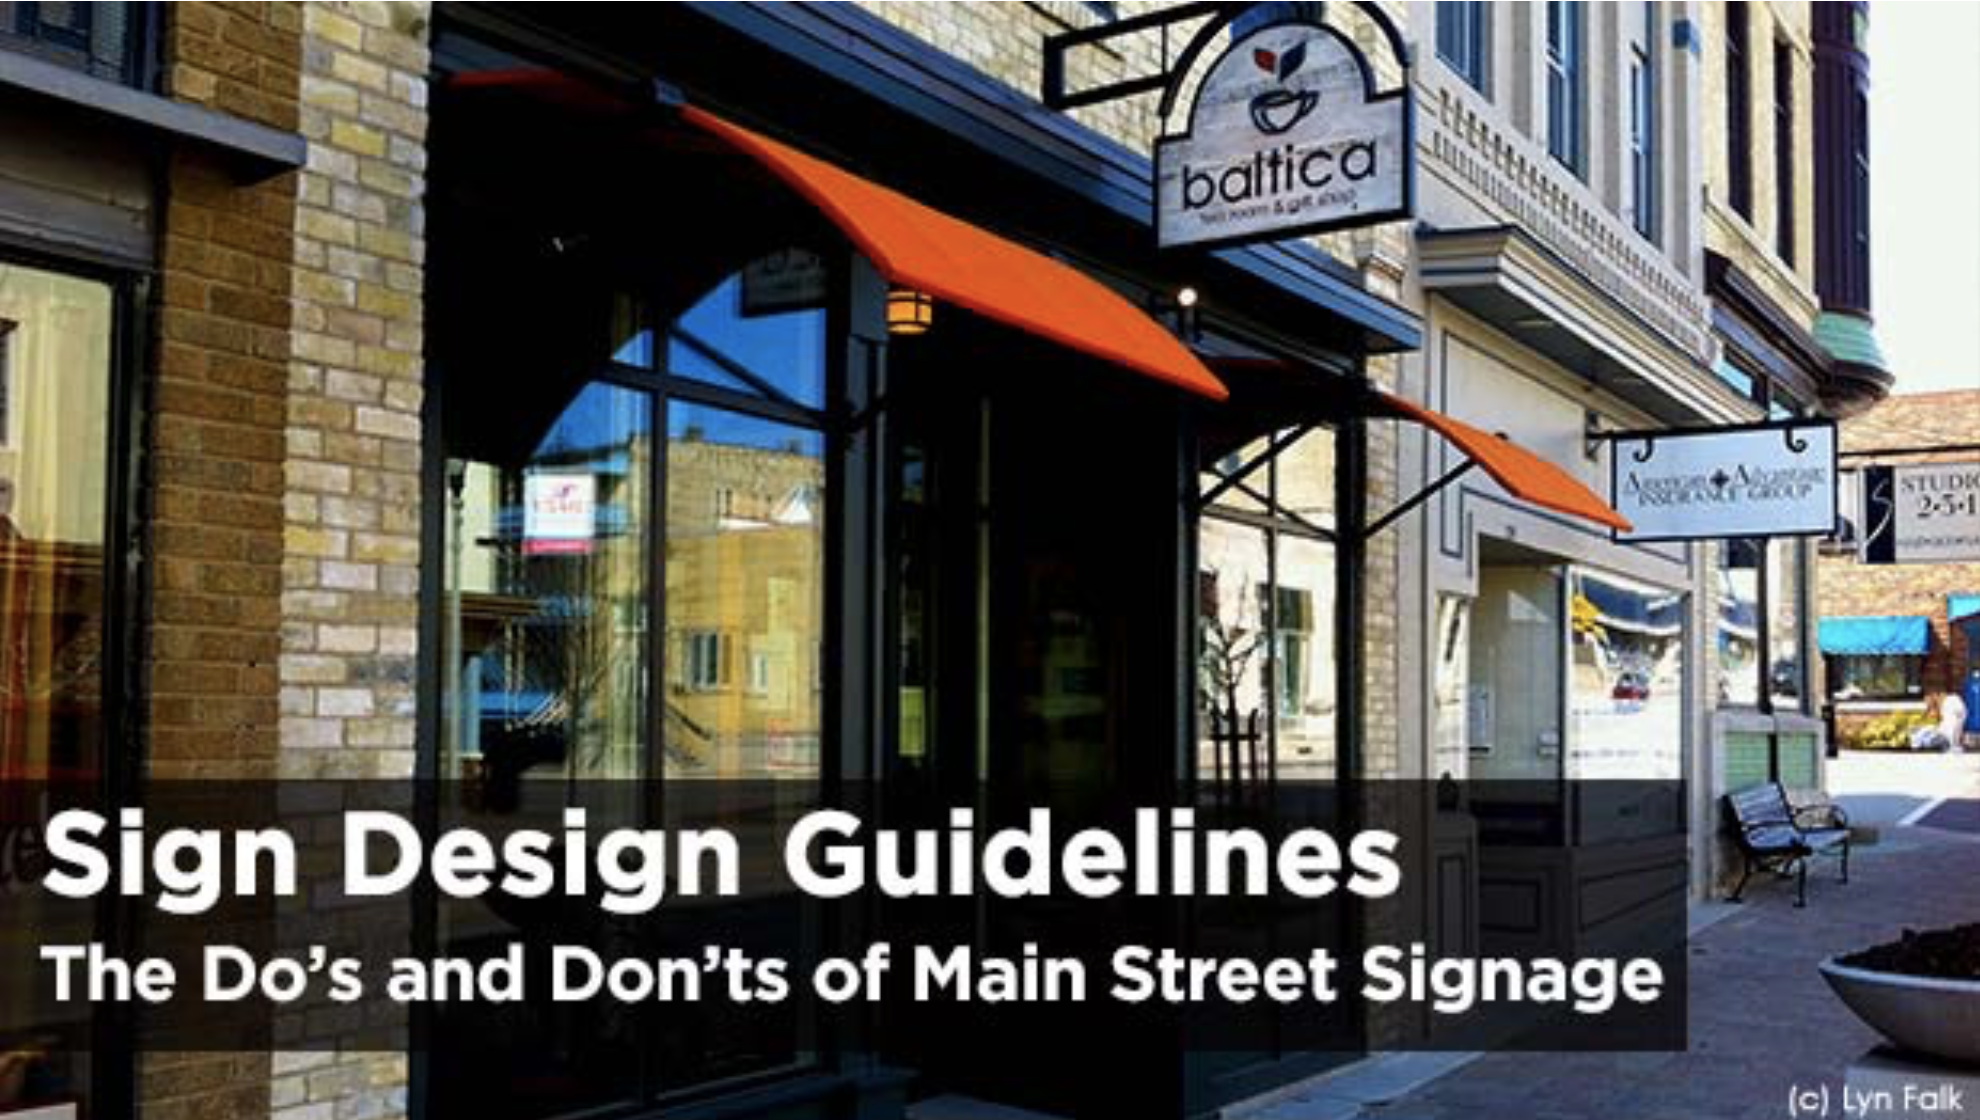 Sign Design Guidelines